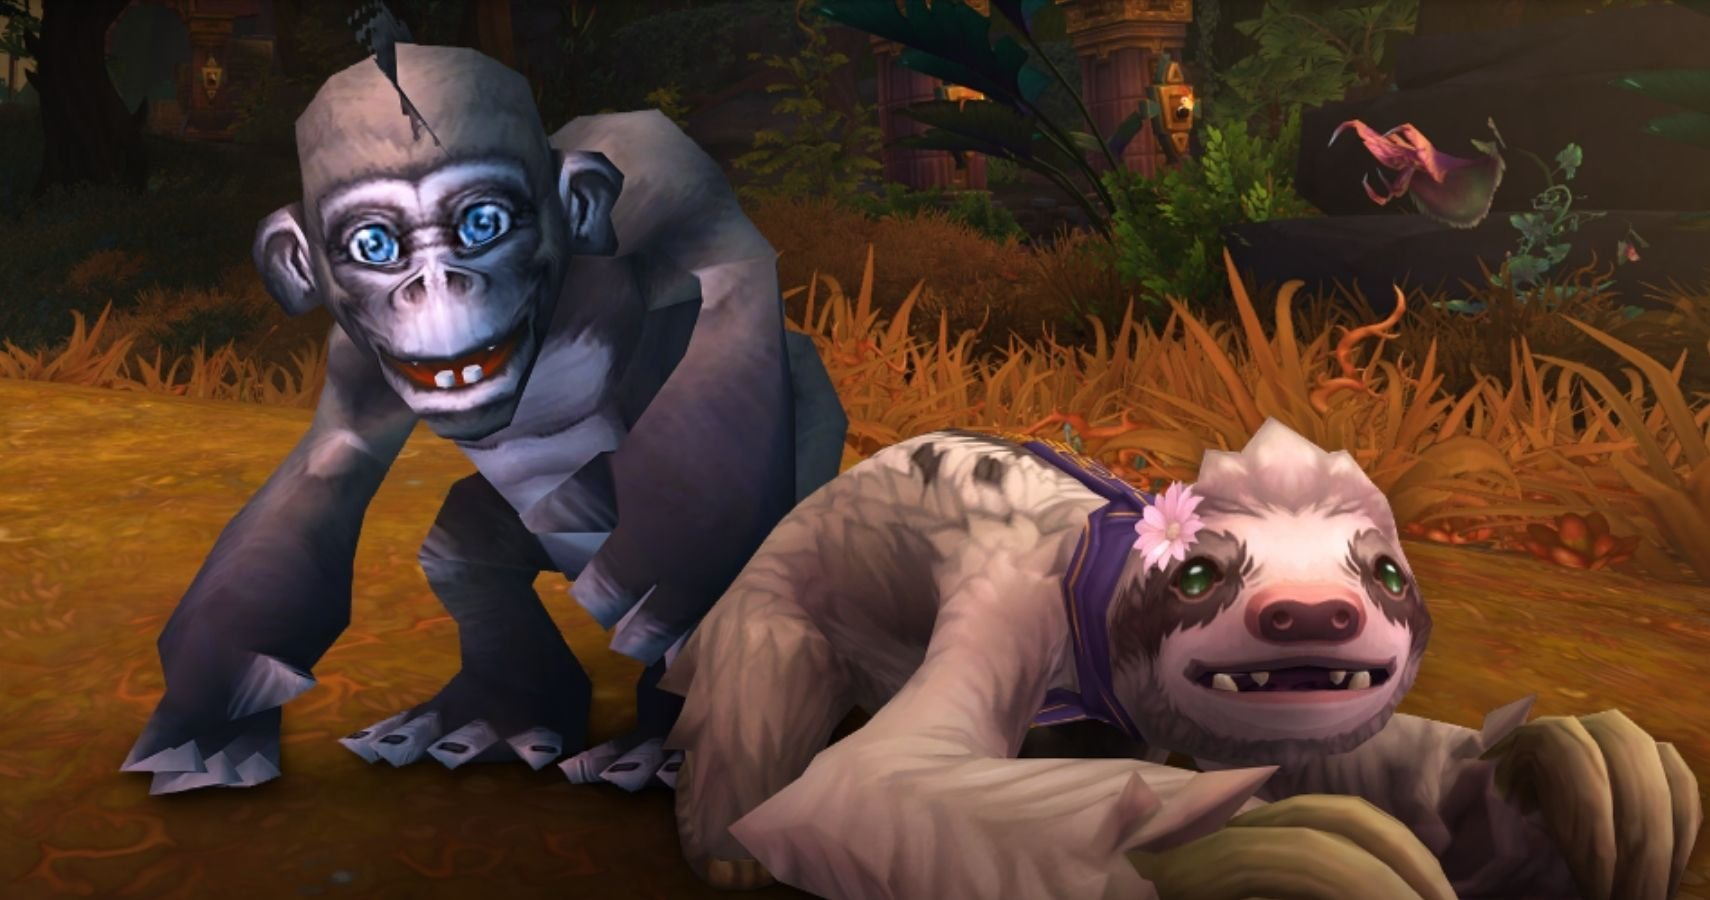 World Of Warcraft Is Giving Out Pet Monkeys And Sloths, But Fans Aren't Sure If They're Actually Cute